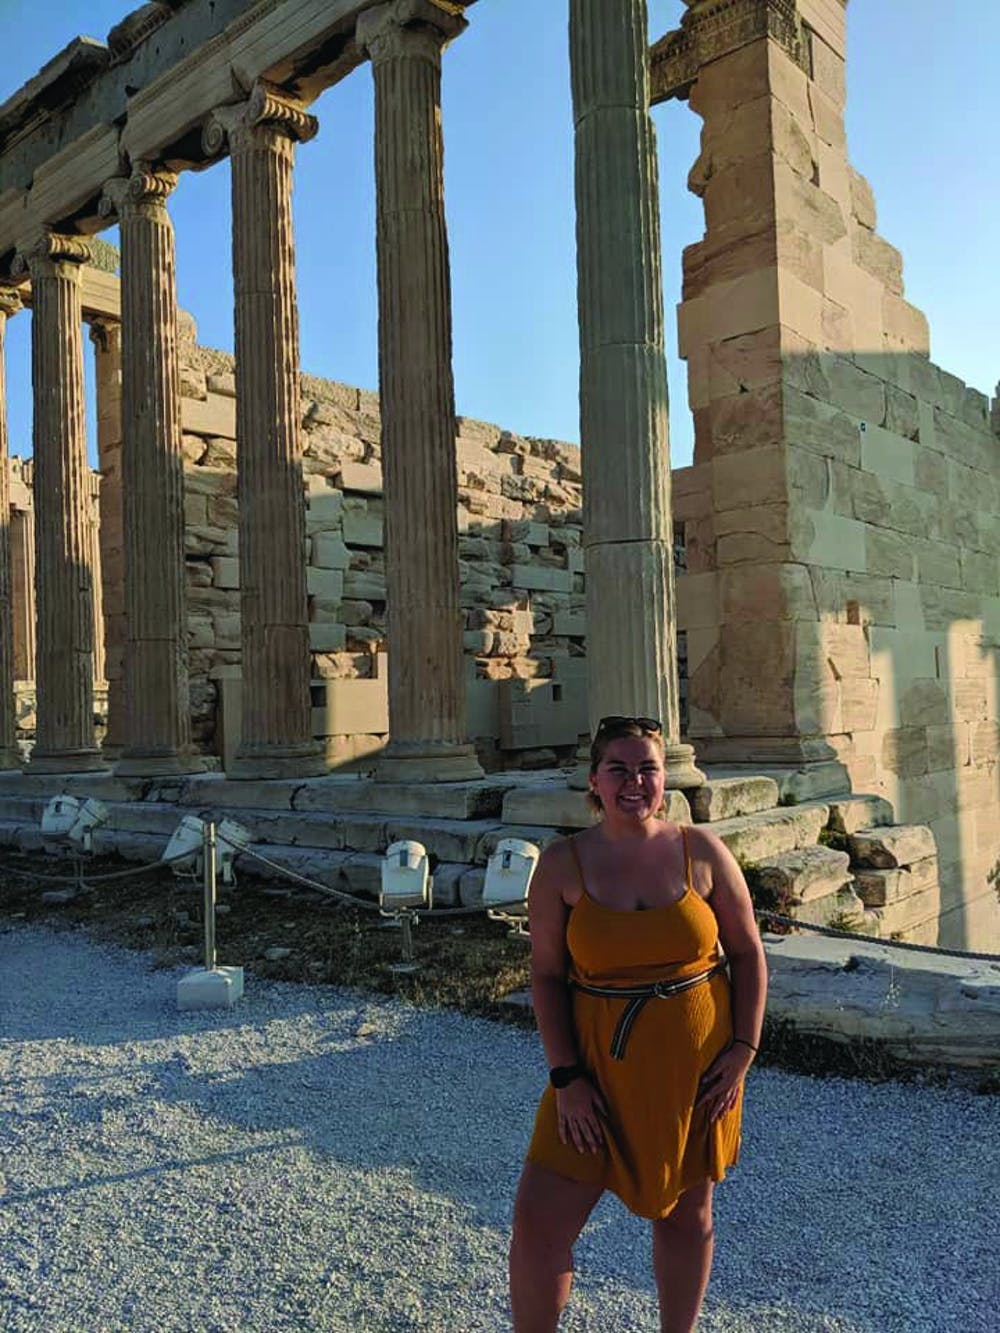 <p>Haley Elgin, junior marketing major, climbed nearly 500 feet to reach the top of the Acropolis of Athens during her study abroad trip throughout Greece. The Acropolis of Athens is an ancient citadel where several ancient monuments, such as the Parthenon, are located. <strong>Haley Elgin, Photo Provided&nbsp;</strong></p>